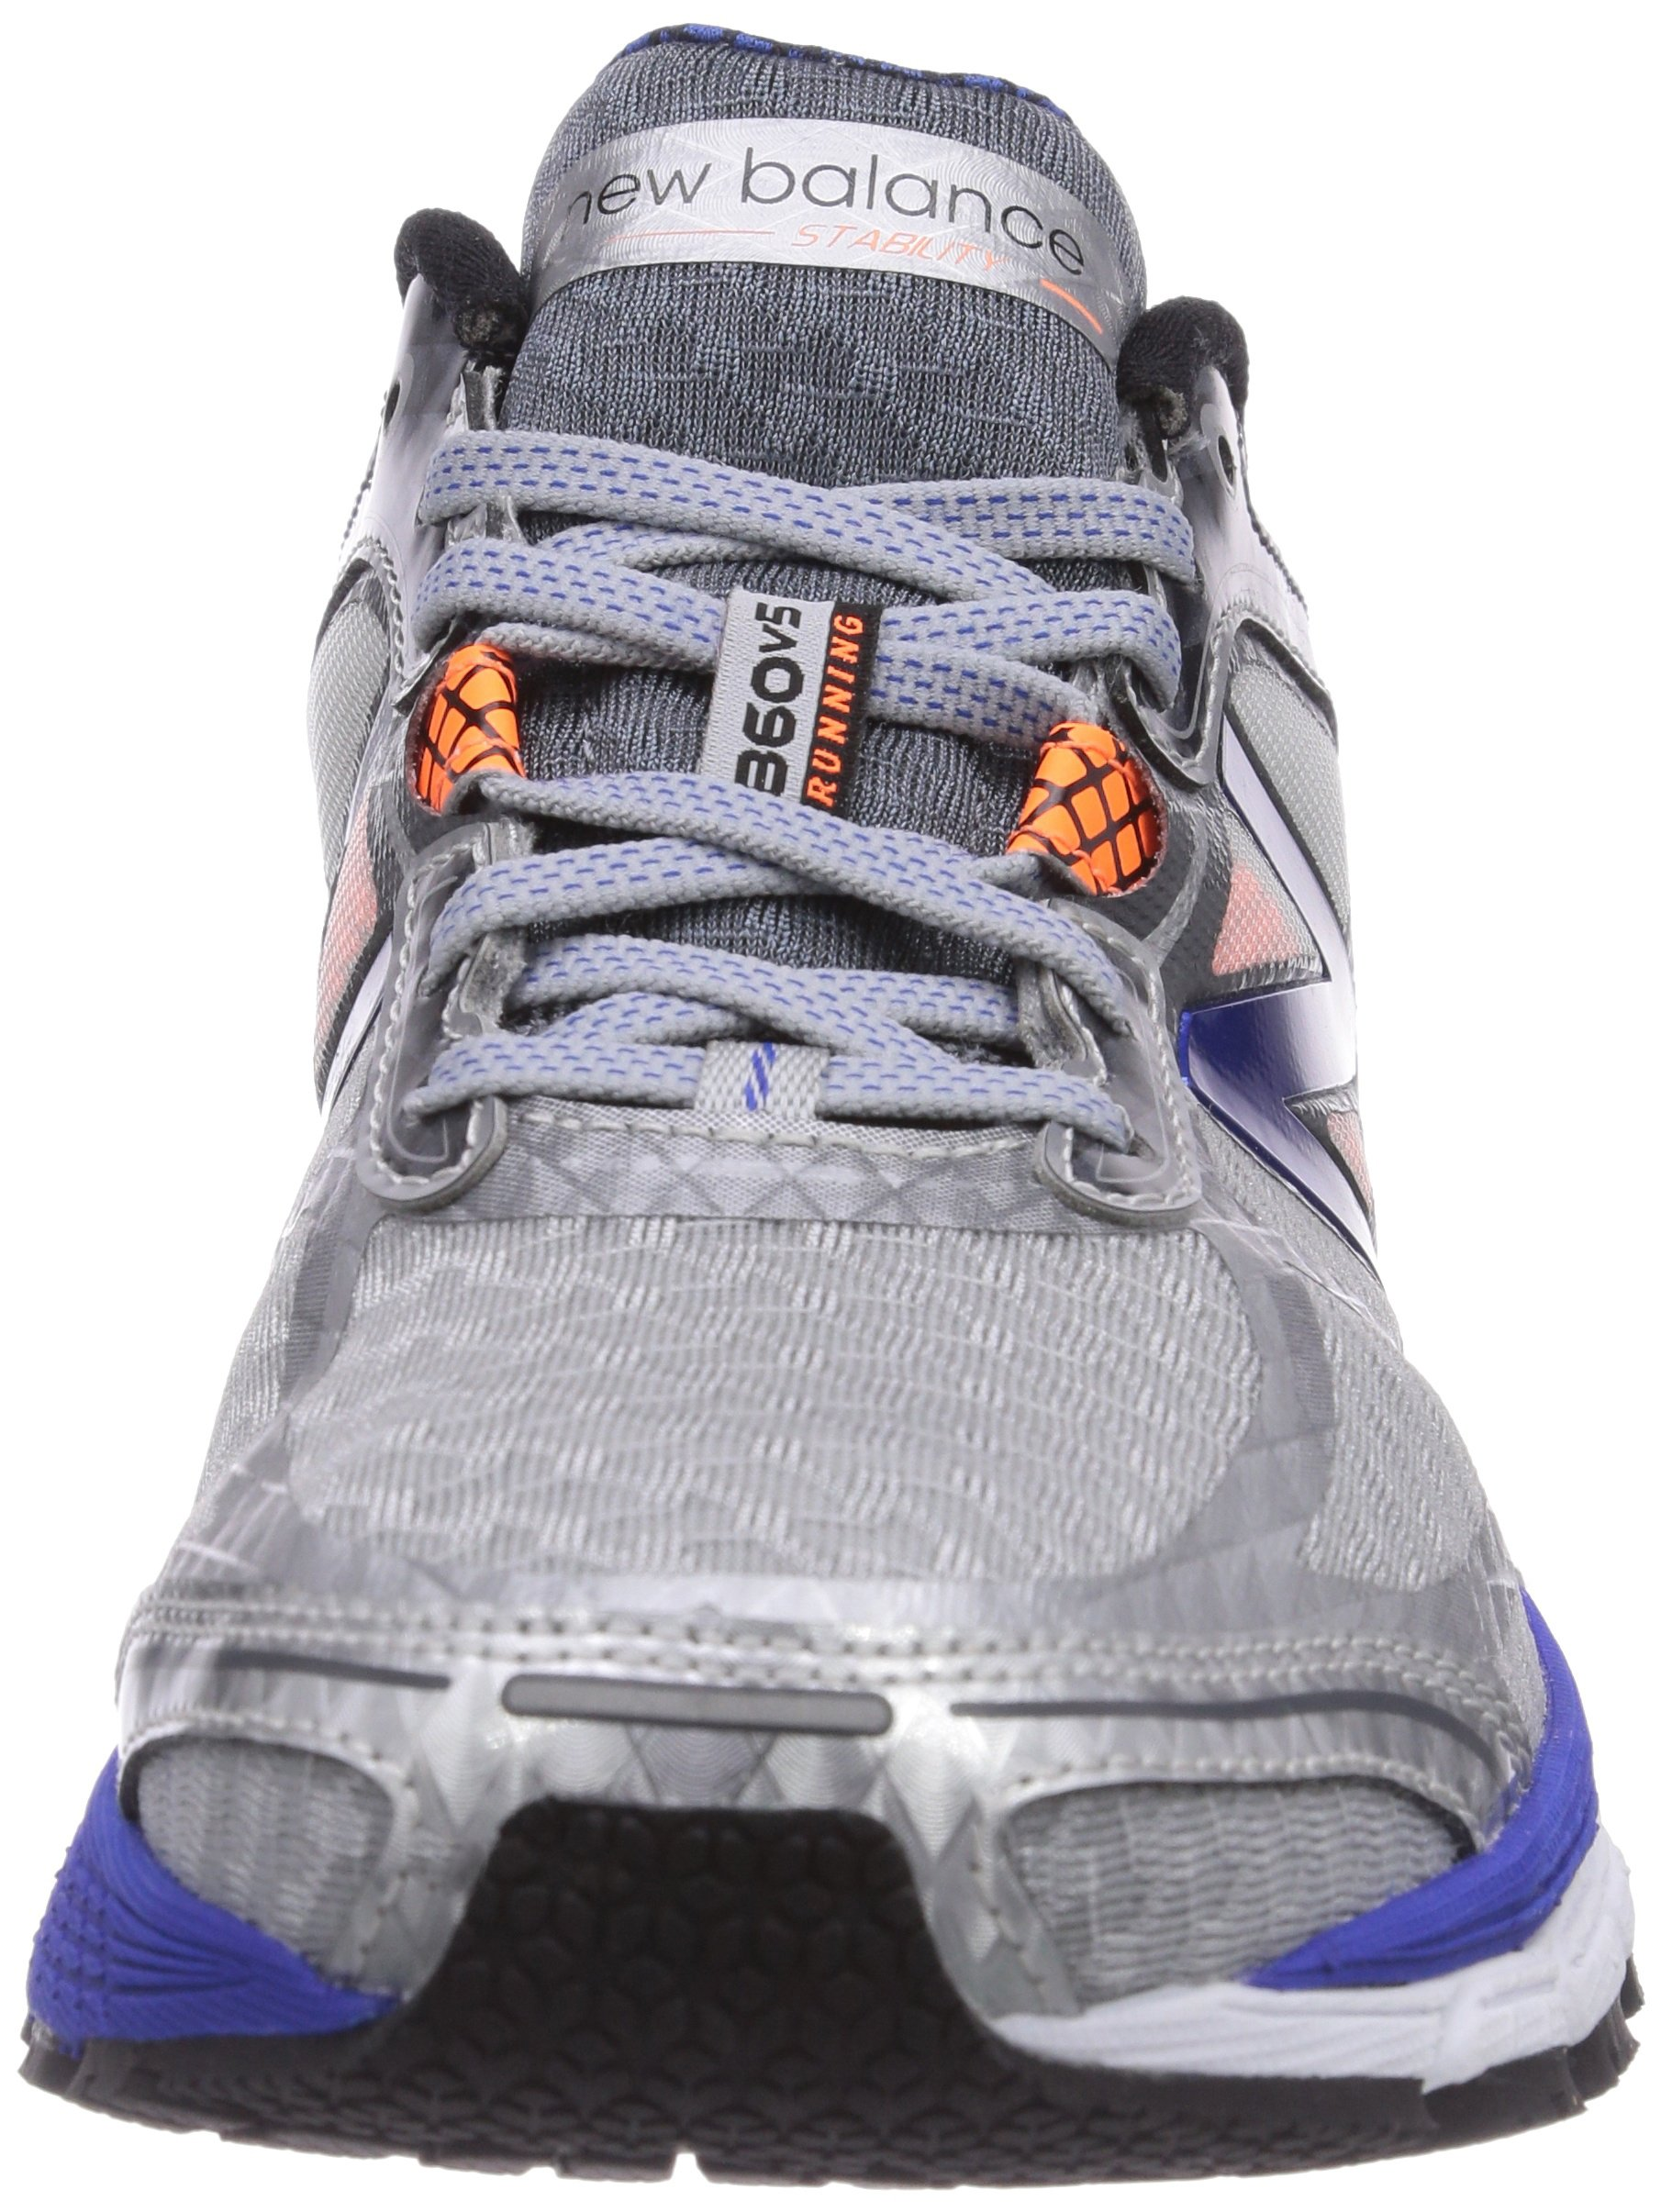 91O5T7iCYjL - New Balance  Men's Running Shoes